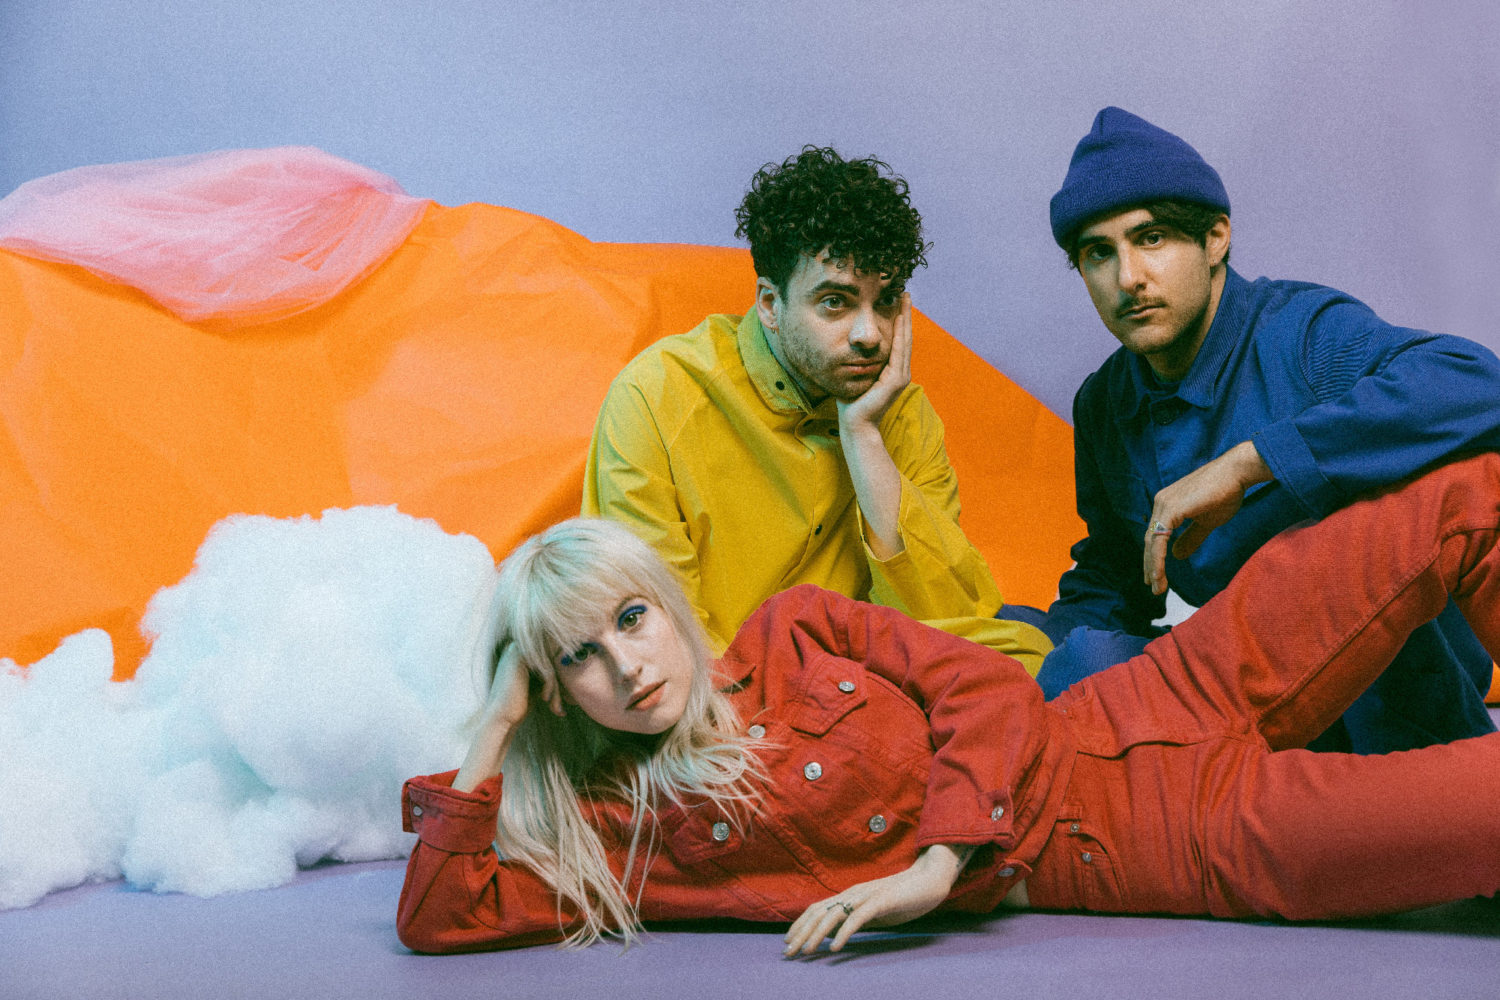 Watch Paramore cover Fleetwood Mac and HalfNoise